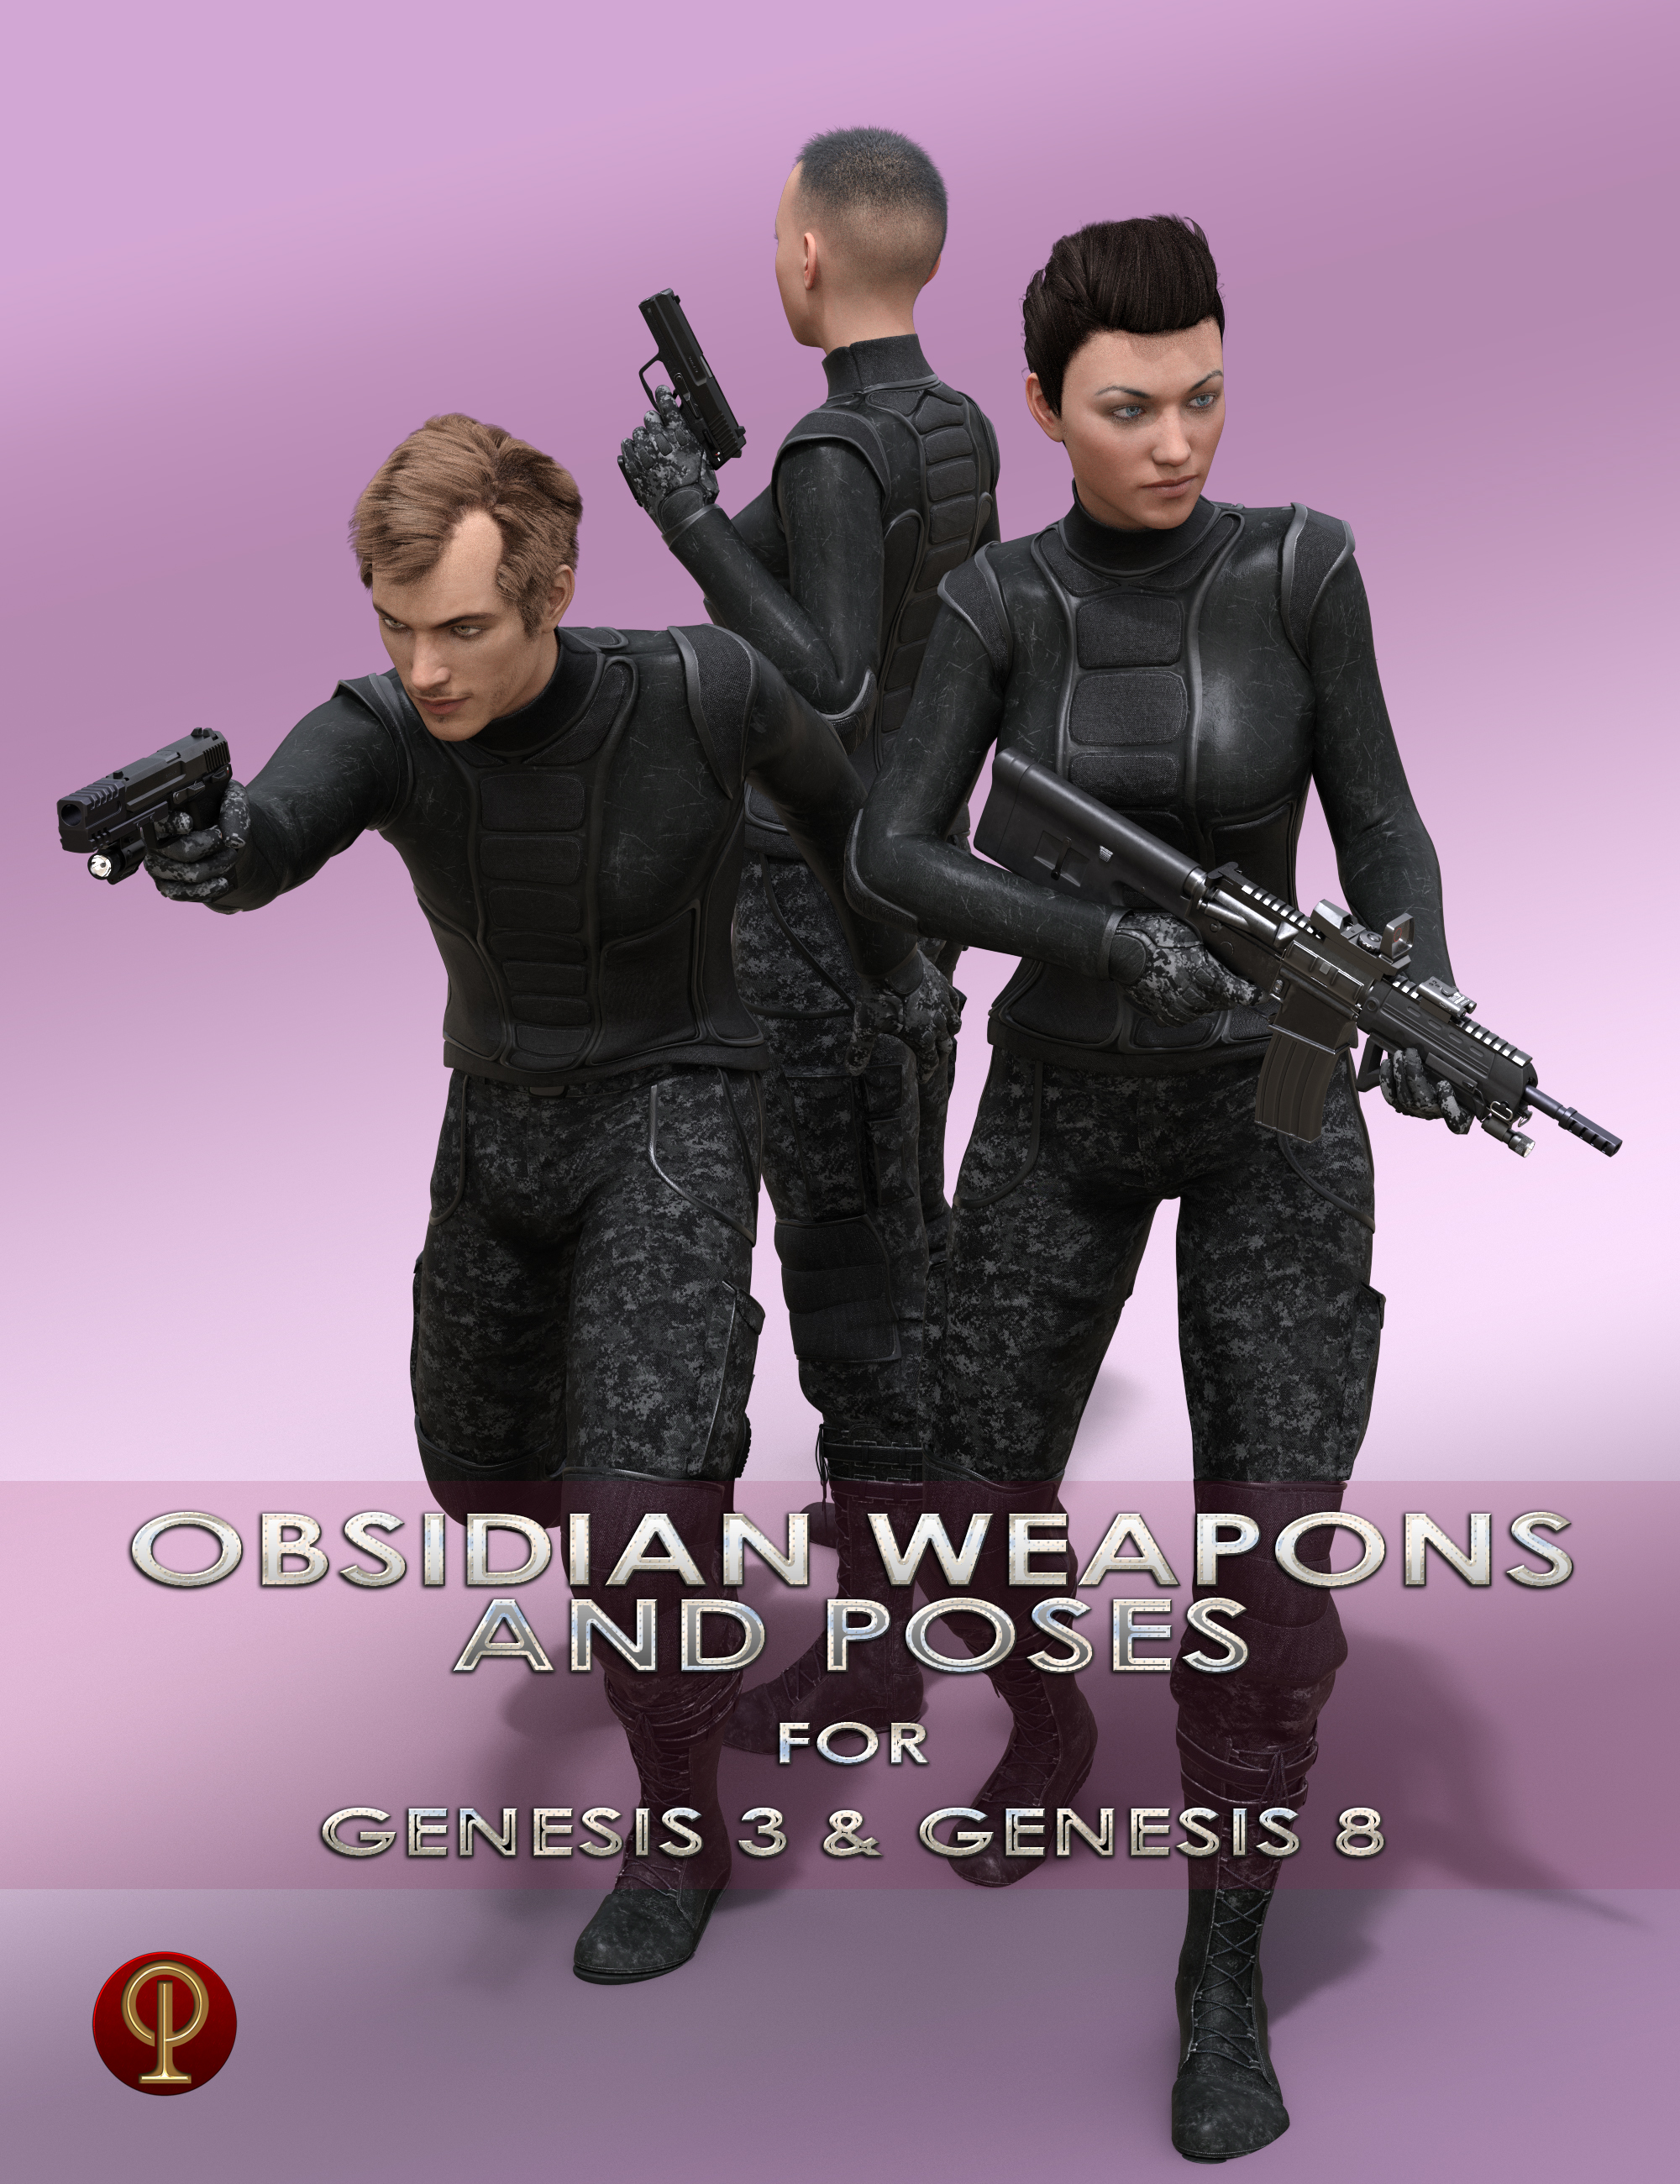 Obsidian Weapons and Poses for Genesis 3 and 8 Male and Female by: Porsimo, 3D Models by Daz 3D